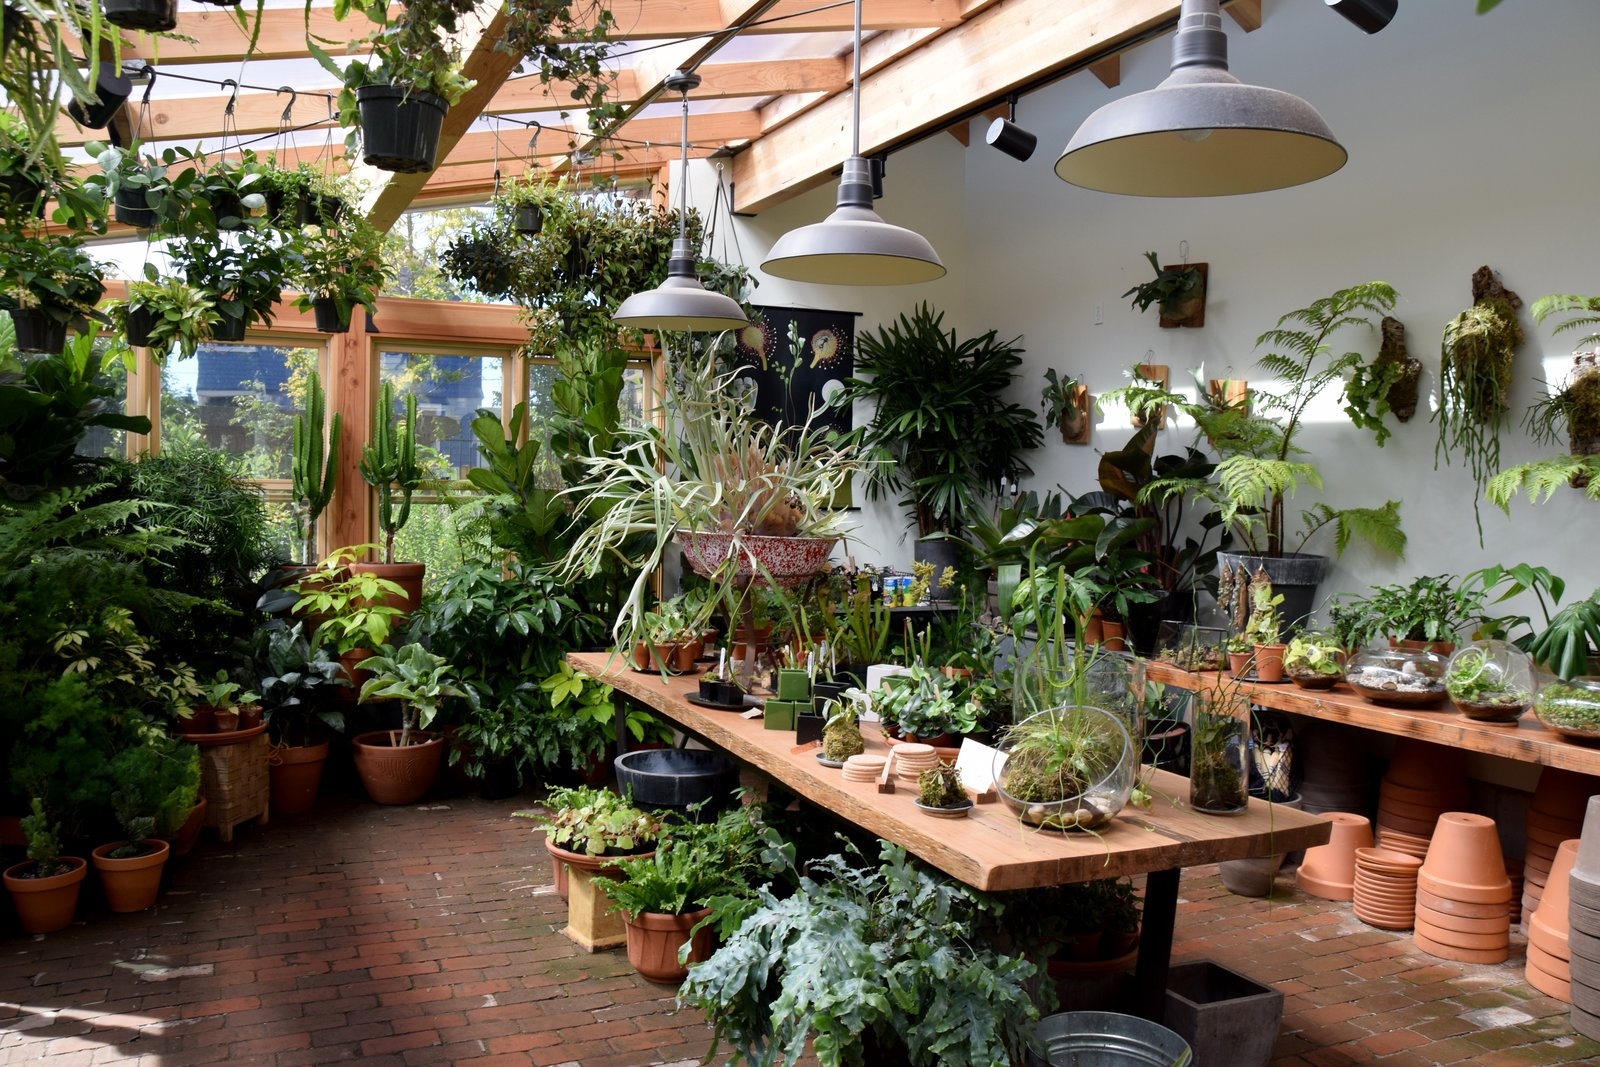 In the sun room, Pistils offers to pot any plant you purchase from them. In the back garden area, you can purchase the perfect plant and meet the chickens that hang out around the on-site chicken coop. Lush Life by Heather Corcoran